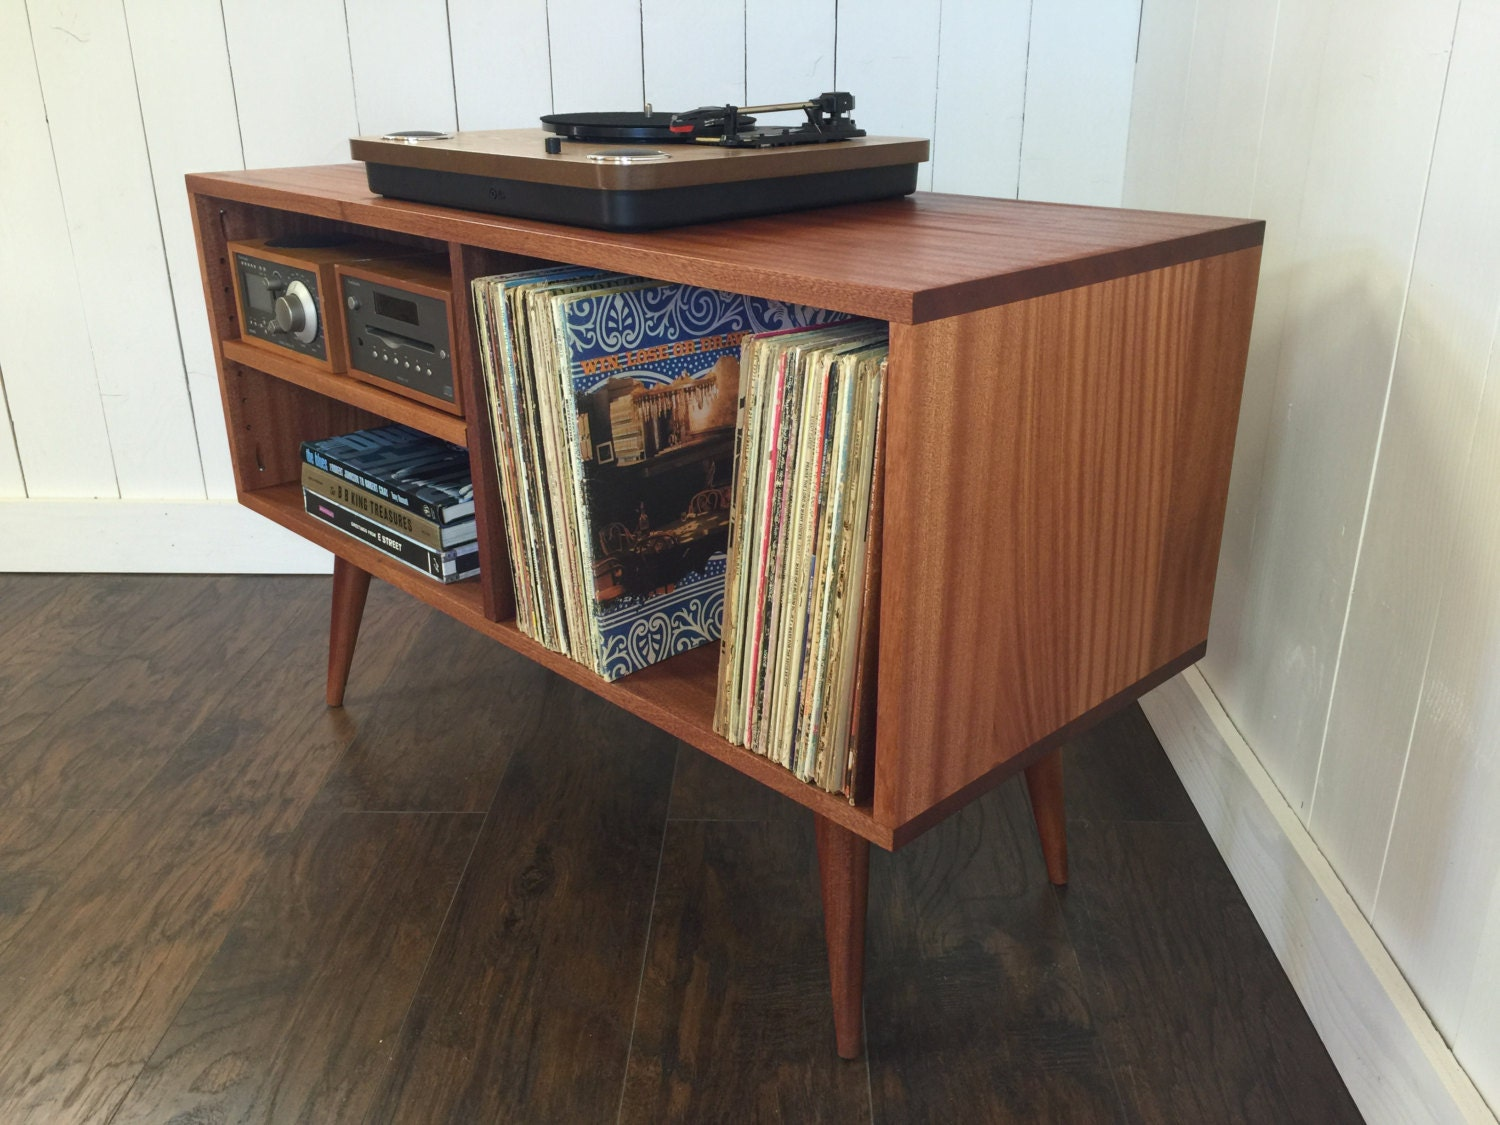 Design Record Player Cabinet new mid century modern record player console turntable